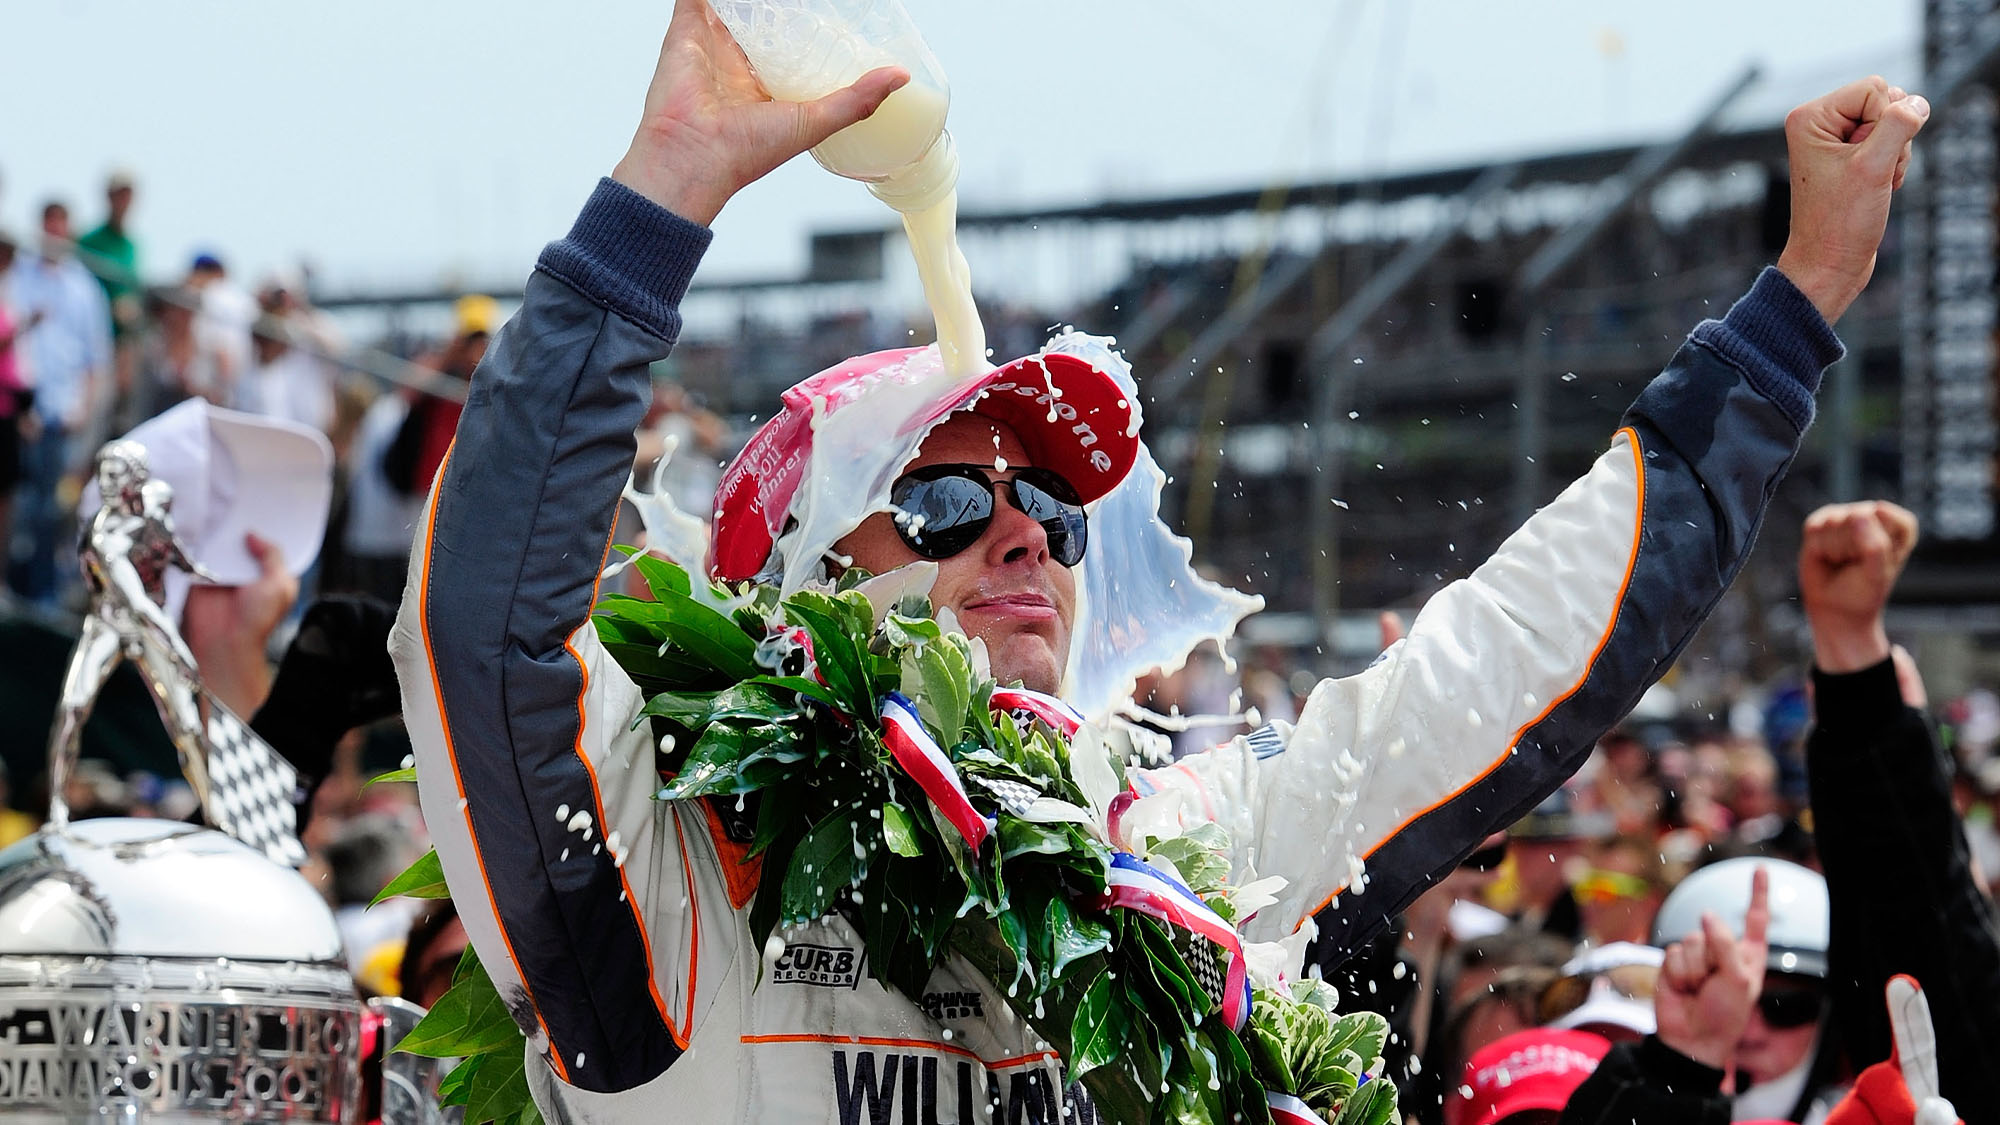 INDIANAPOLIS, IN - MAY 29: Dan Wheldon of England, driver of the #98 William Rast-Curb/Big Machine Dallara Honda, celebrates in victory lane after winning the IZOD IndyCar Series Indianapolis 500 Mile Race at Indianapolis Motor Speedway on May 29, 2011 in Indianapolis, Indiana. (Photo by Robert Laberge/Getty Images)